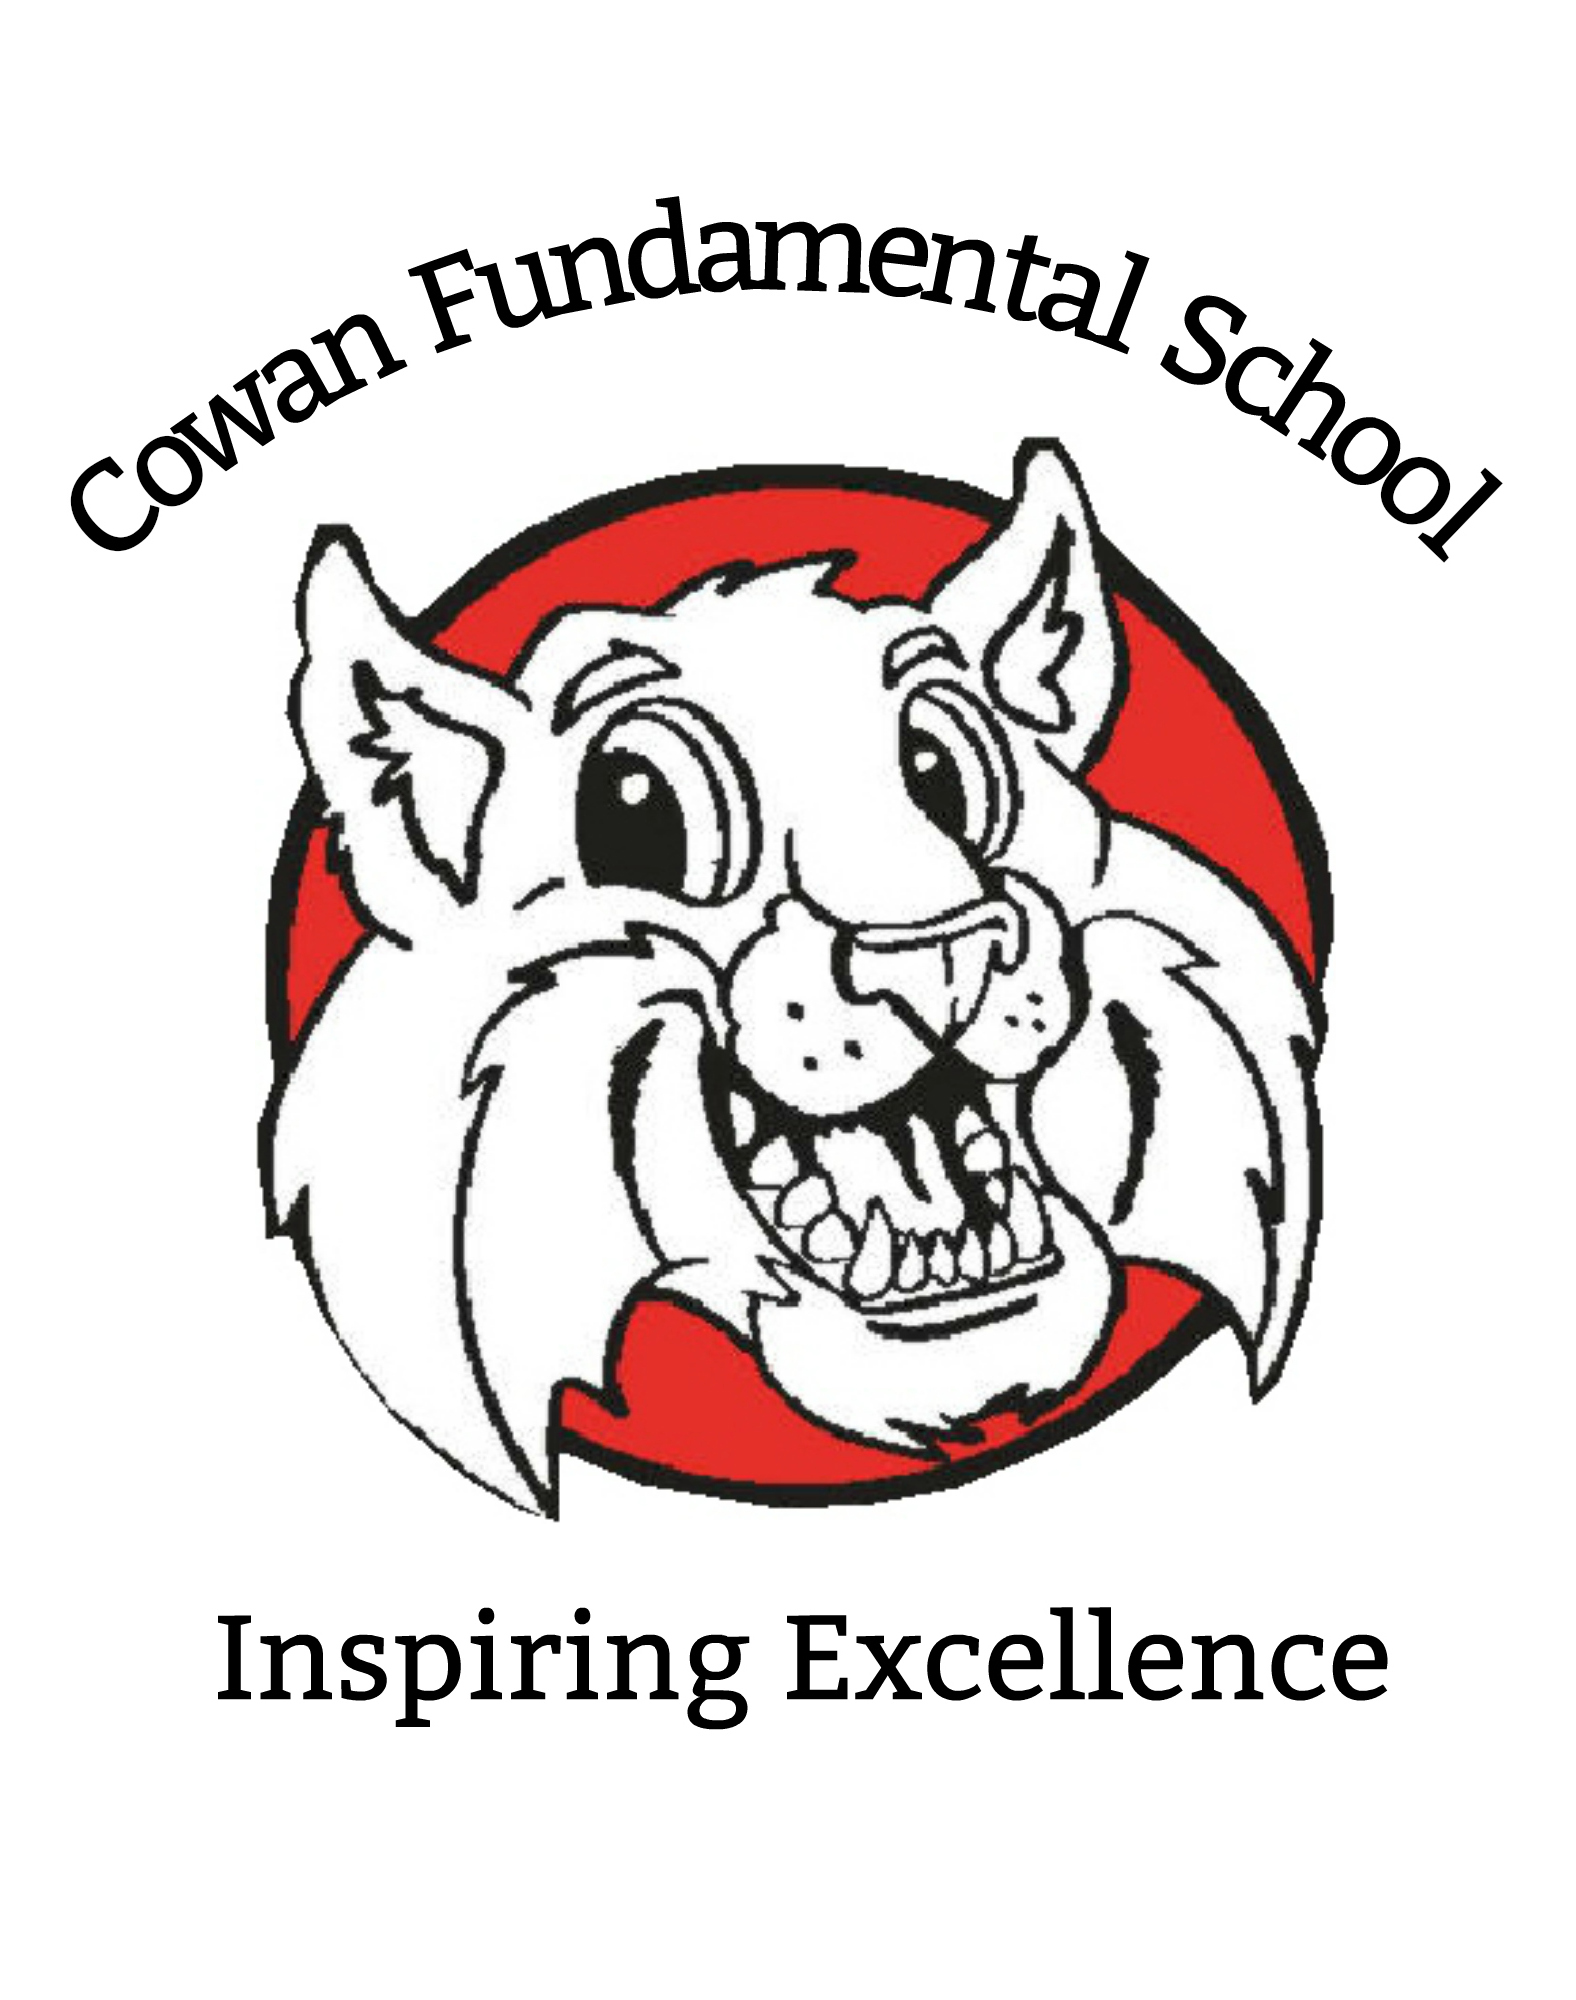 Cowan Fundamental Elementary